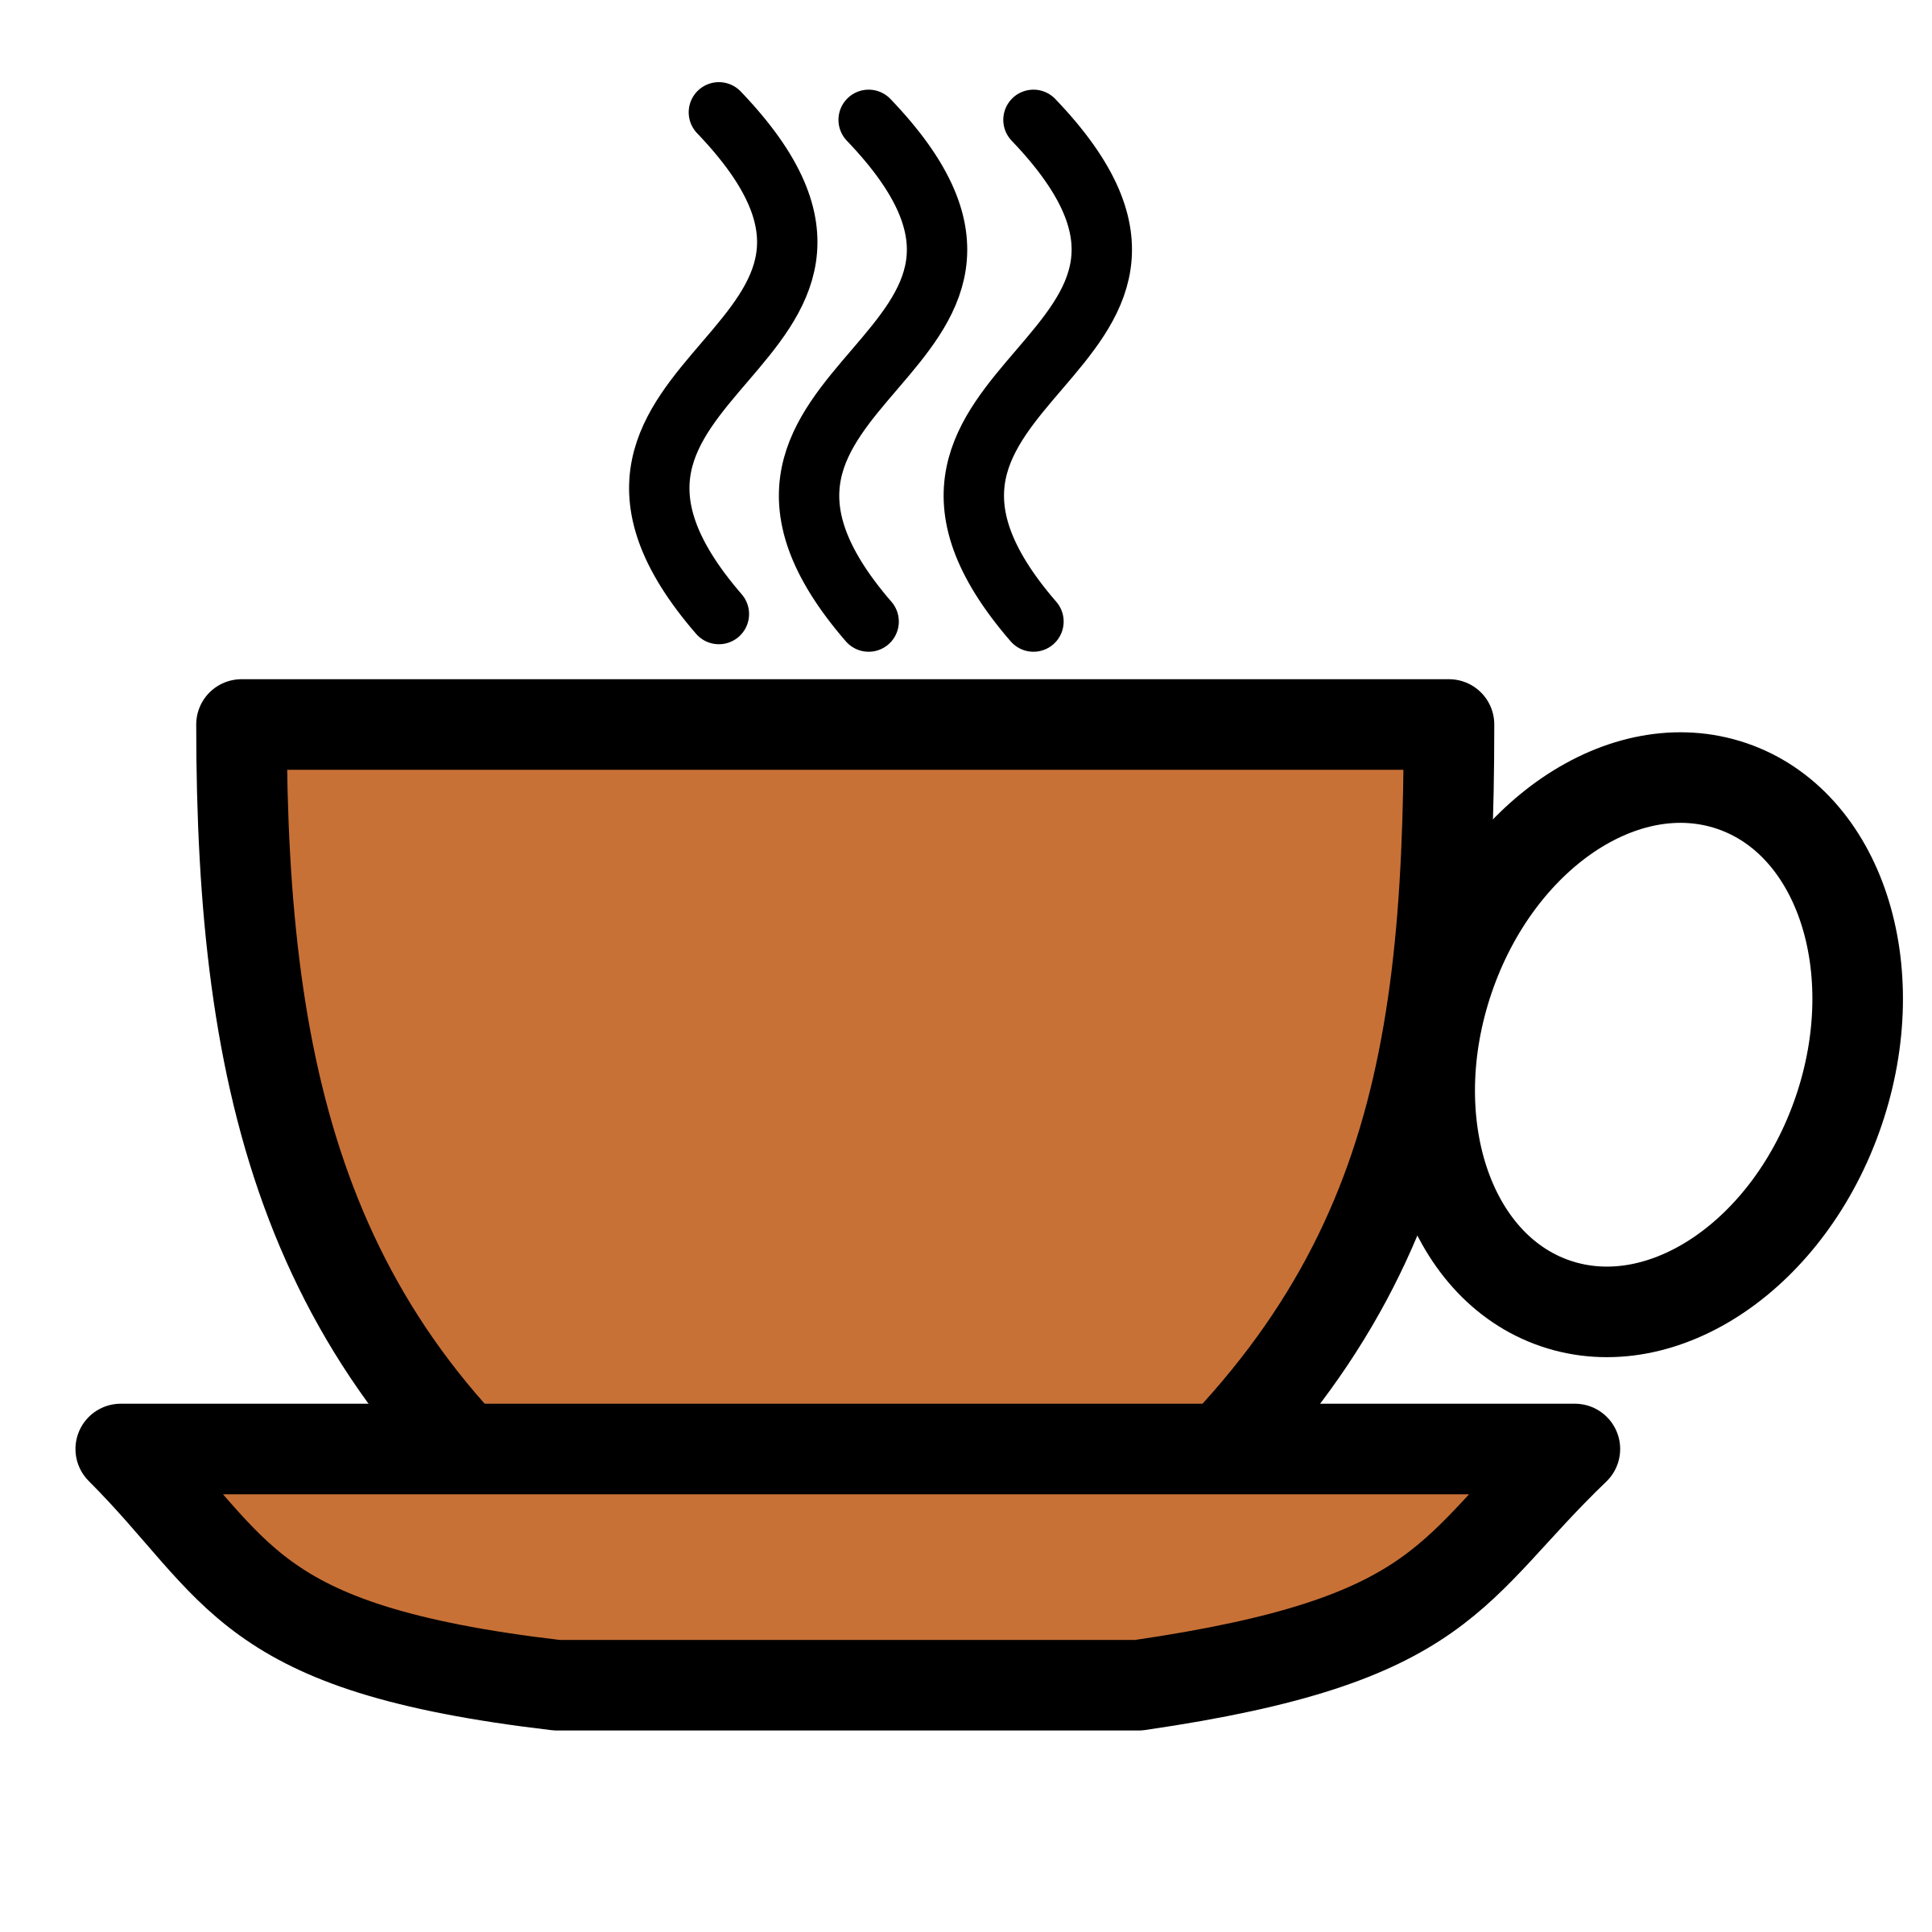 Cafe clipart coffee cup. Icon big image png